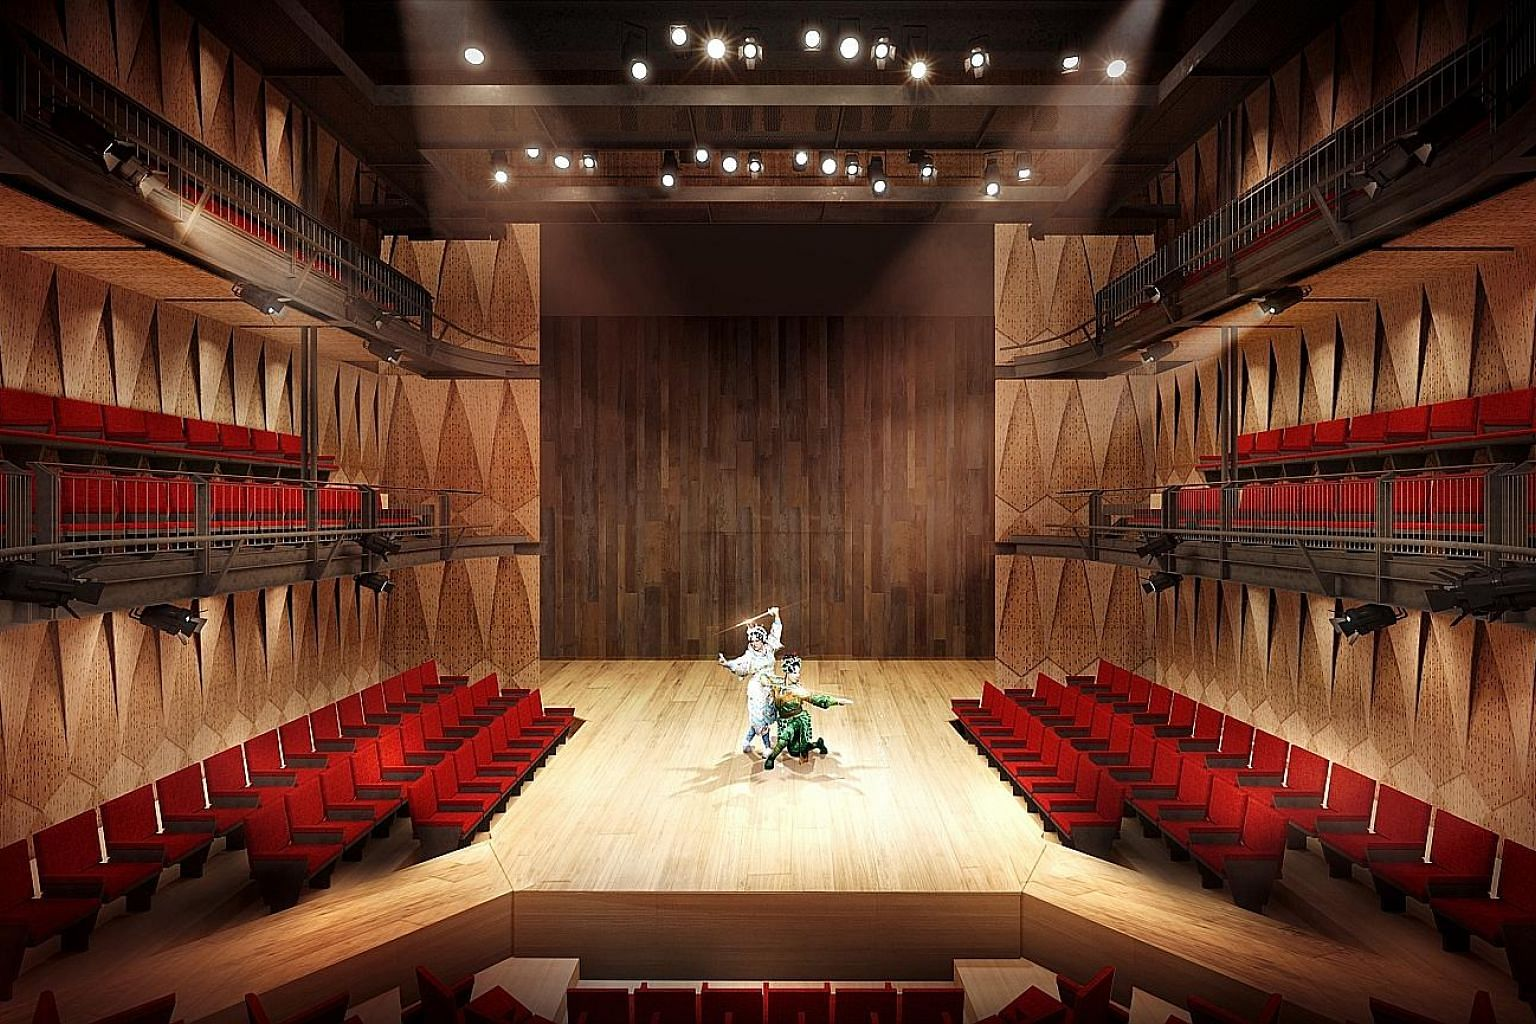 An artist's impression of Wild Rice's 360-seat theatre at Funan mall. Its new 18,000 sq ft complex will now open on Aug 8 with a restaging of Thomas Lim's domestic drama Supervision.